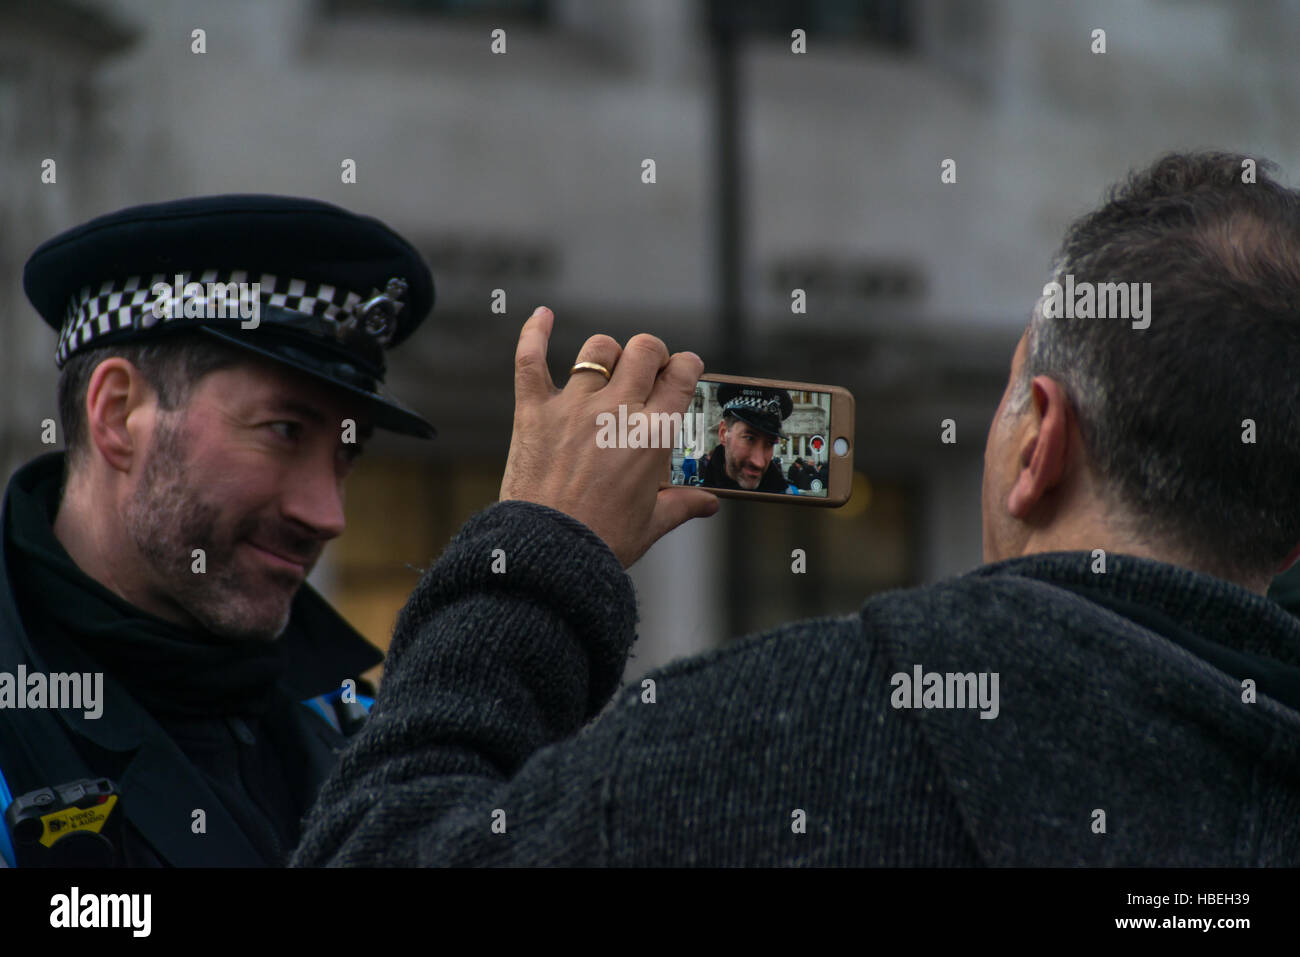 London, UK. 5th December, 2016. Anti-brexiters and Brexiters, clash outside The Supreme Court as 11 judges decide Stock Photo